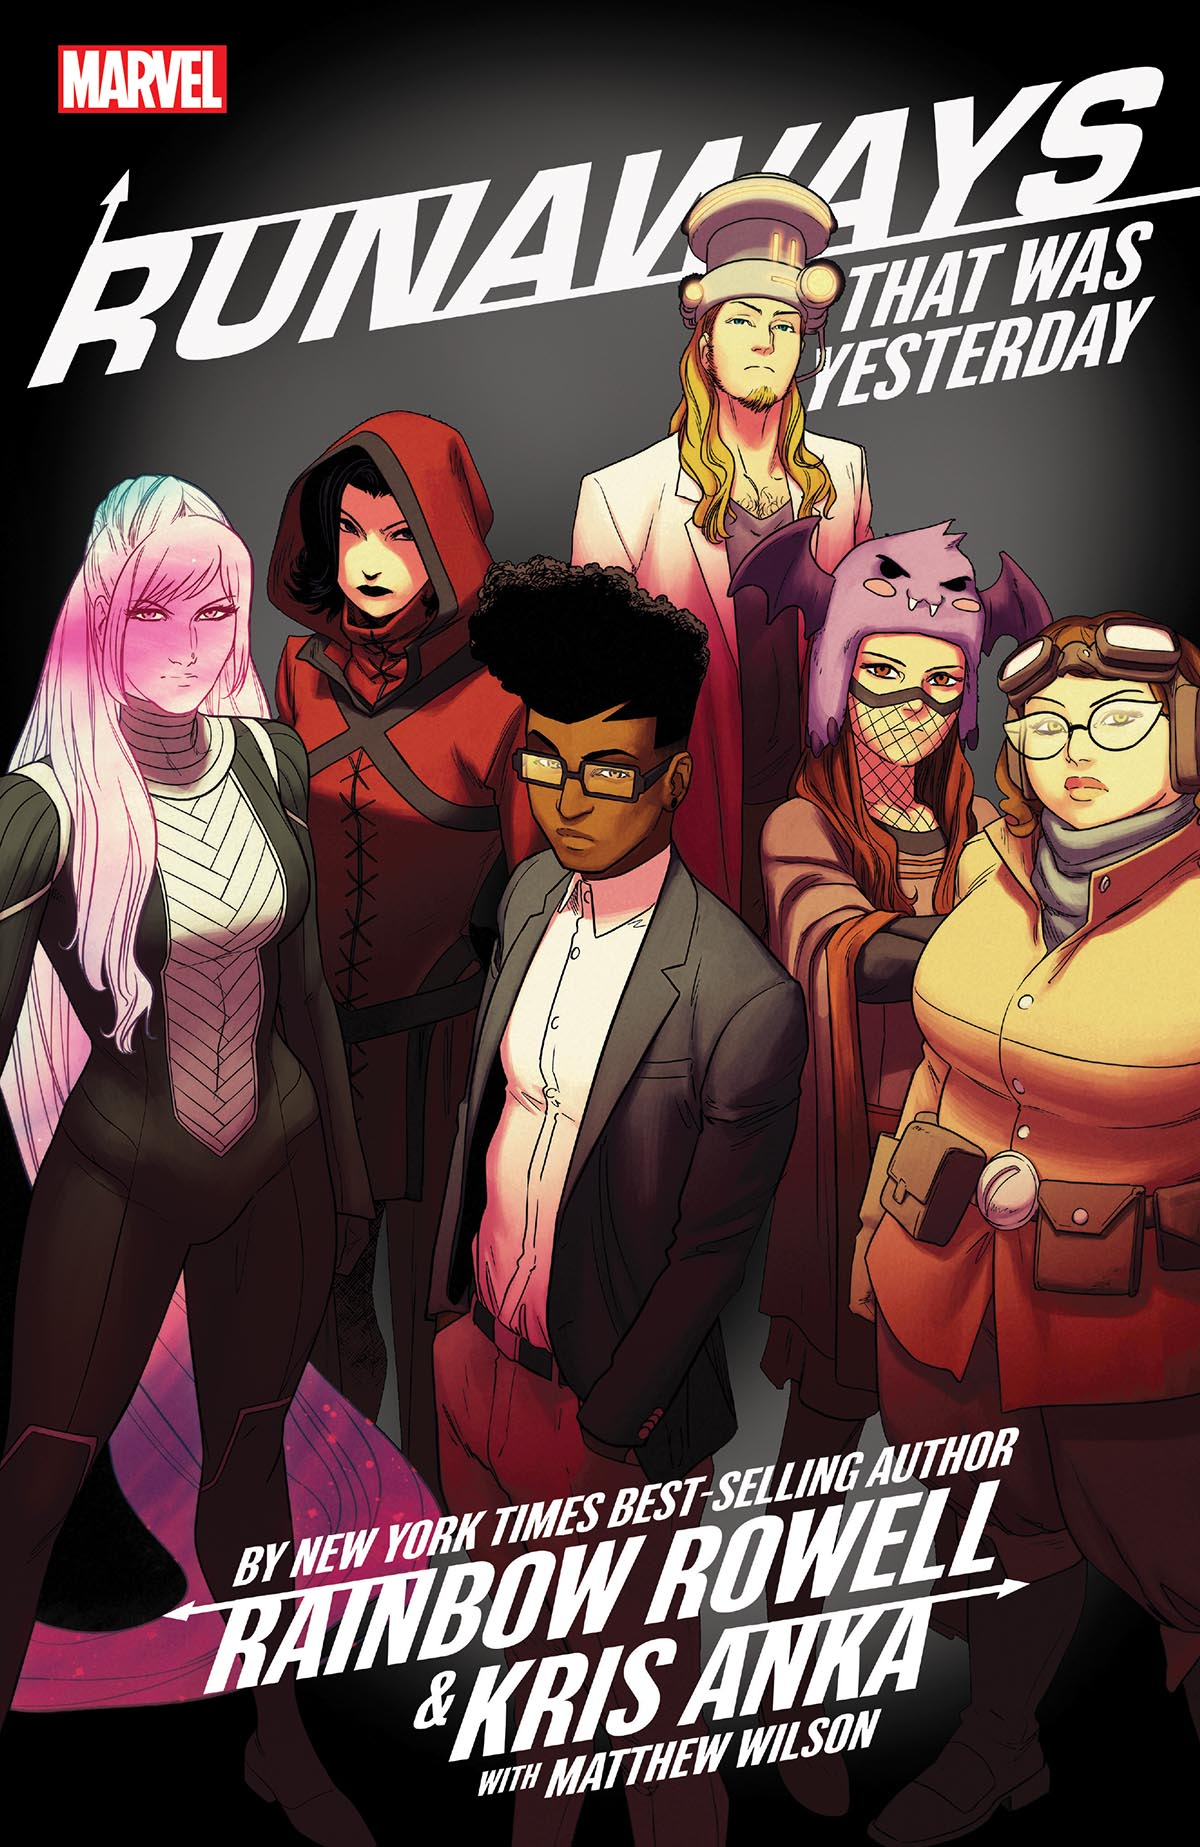 Runaways By Rainbow Rowell & Kris Anka Vol. 3: That Was Yesterday (Trade Paperback)